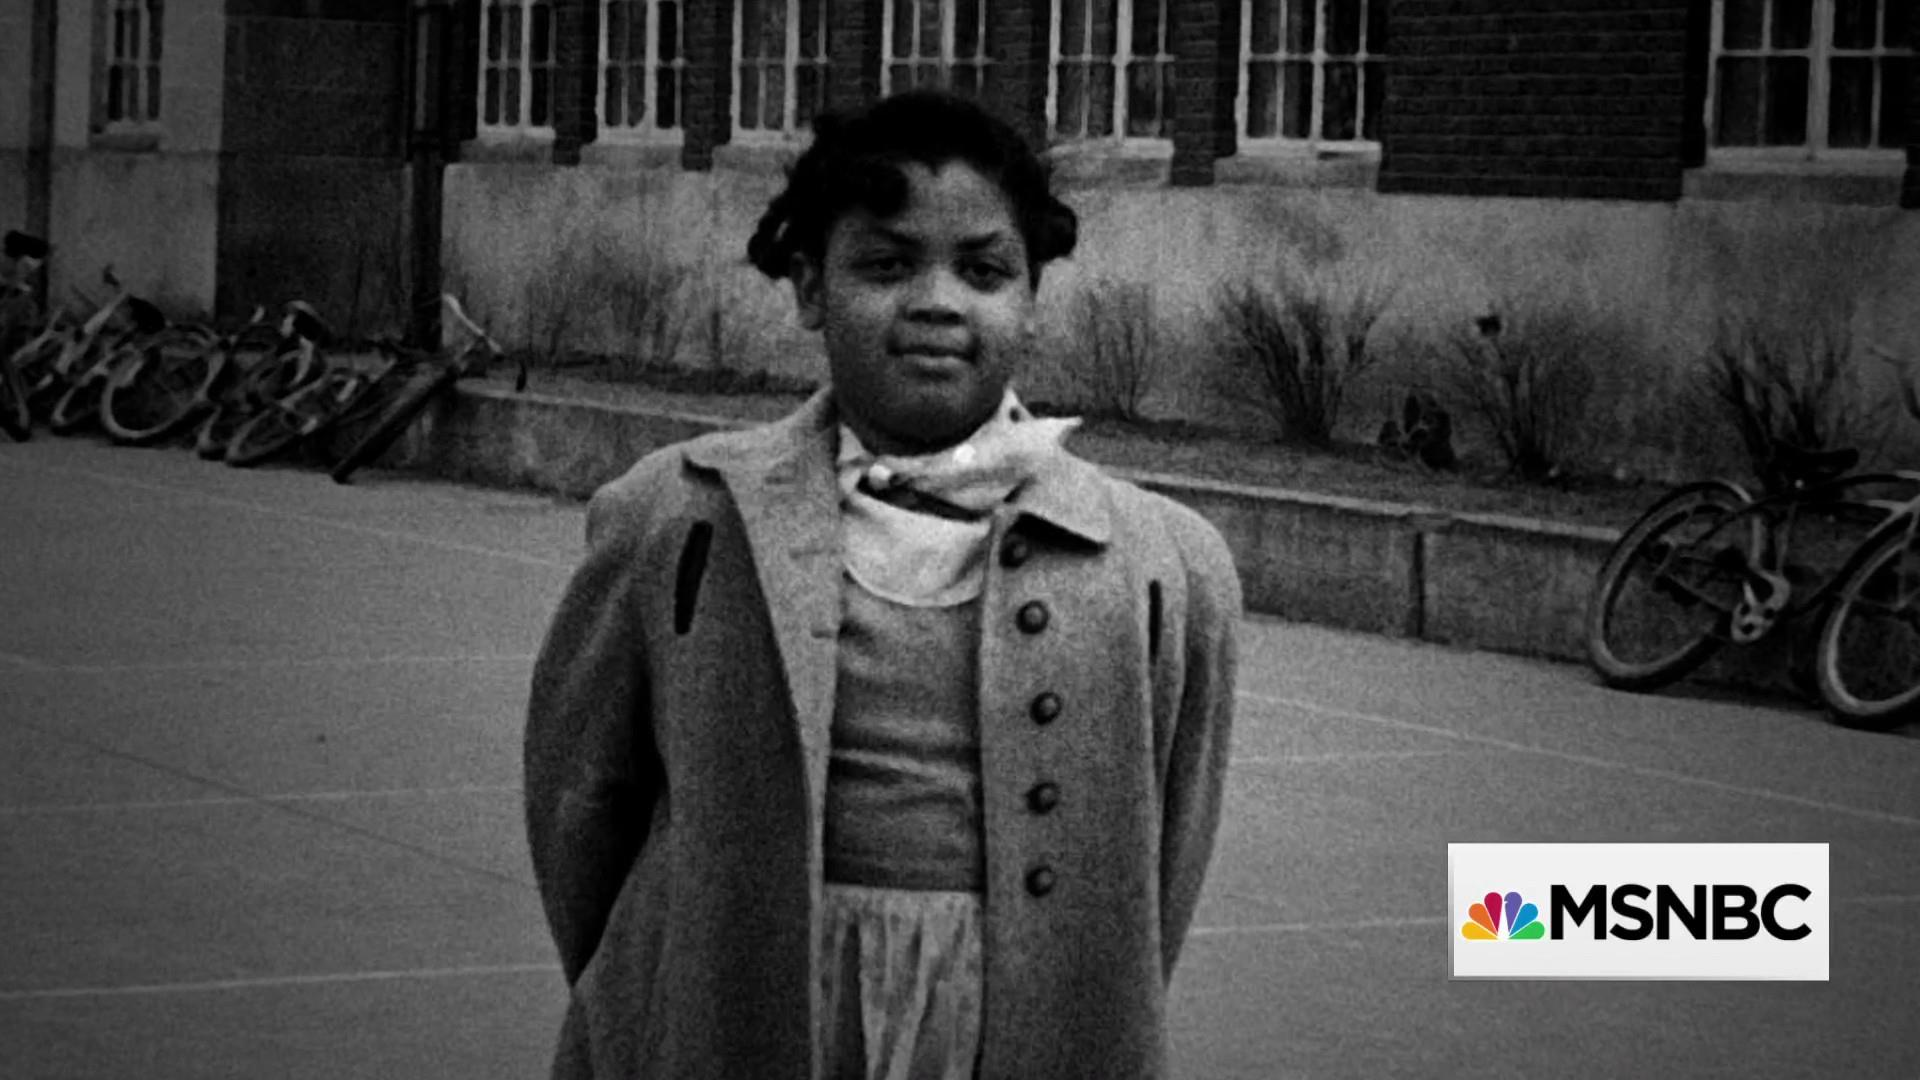 Linda Brown is a Monumental American